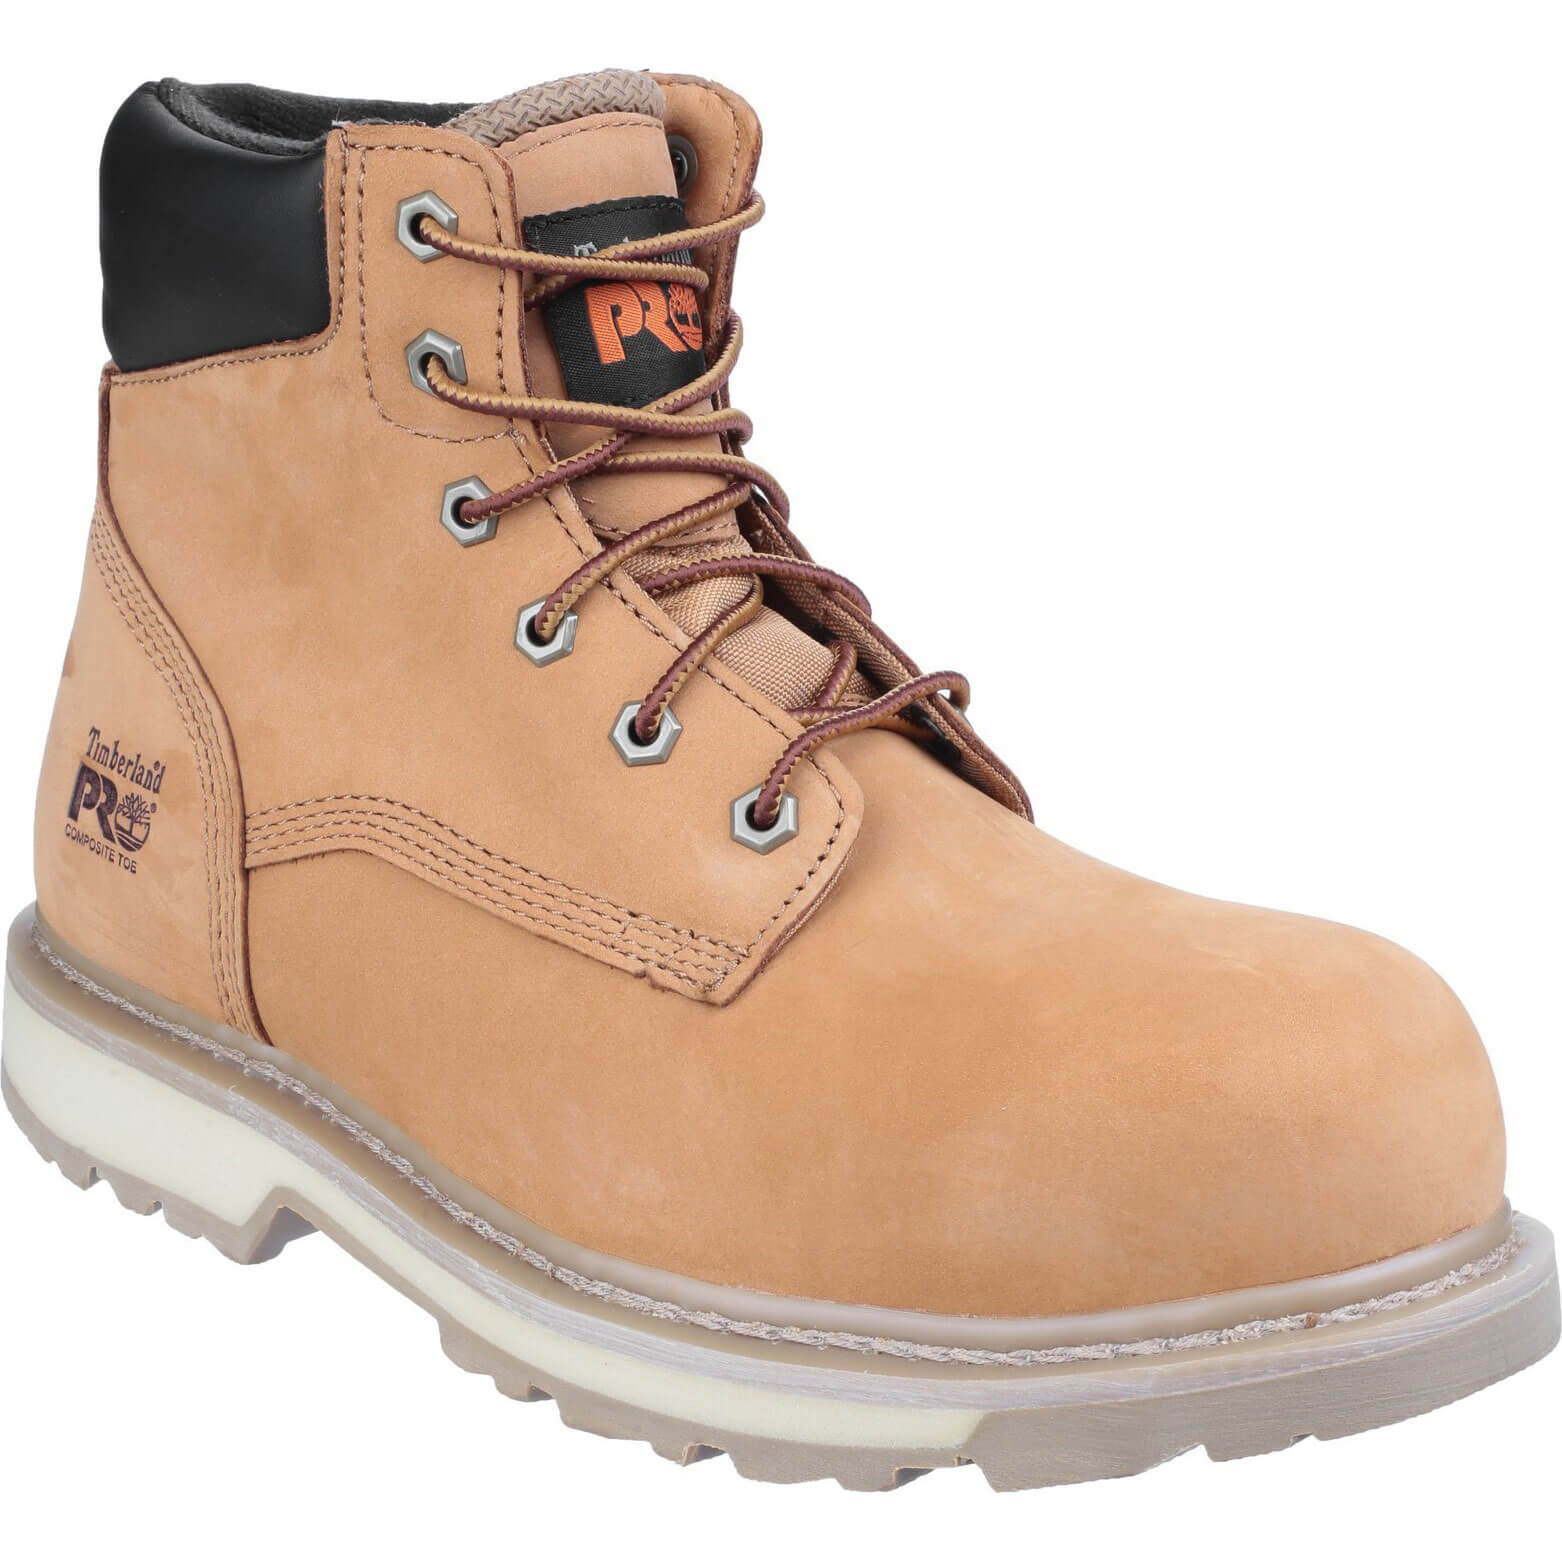 Image of Timberland Pro Mens Traditional Safety Boots Wheat Size 6.5